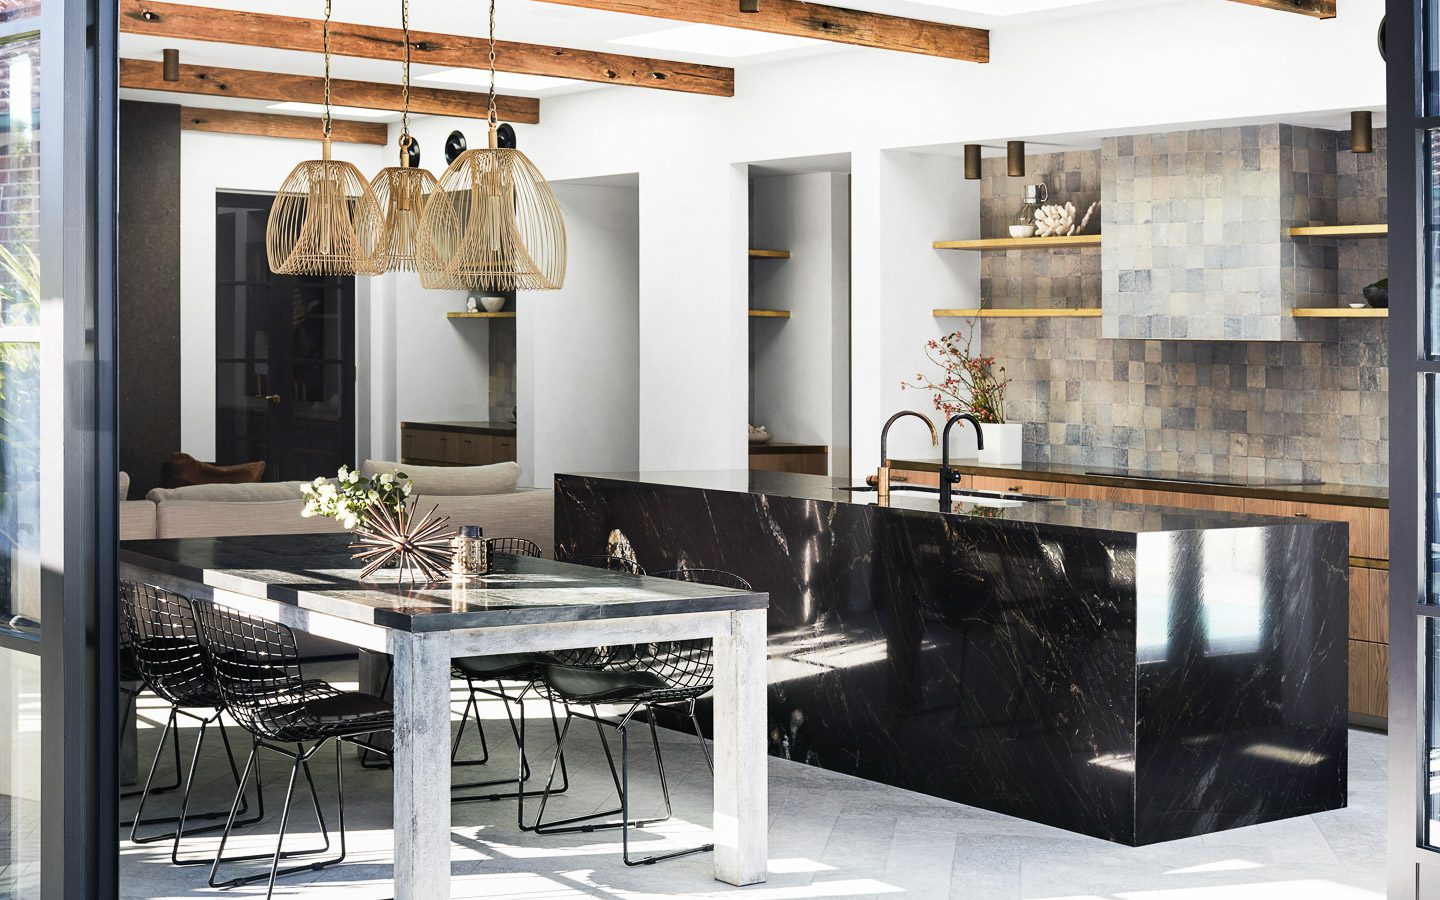 Designer-Details-Mosman-Kitchen-and-Dining-wide-aspect